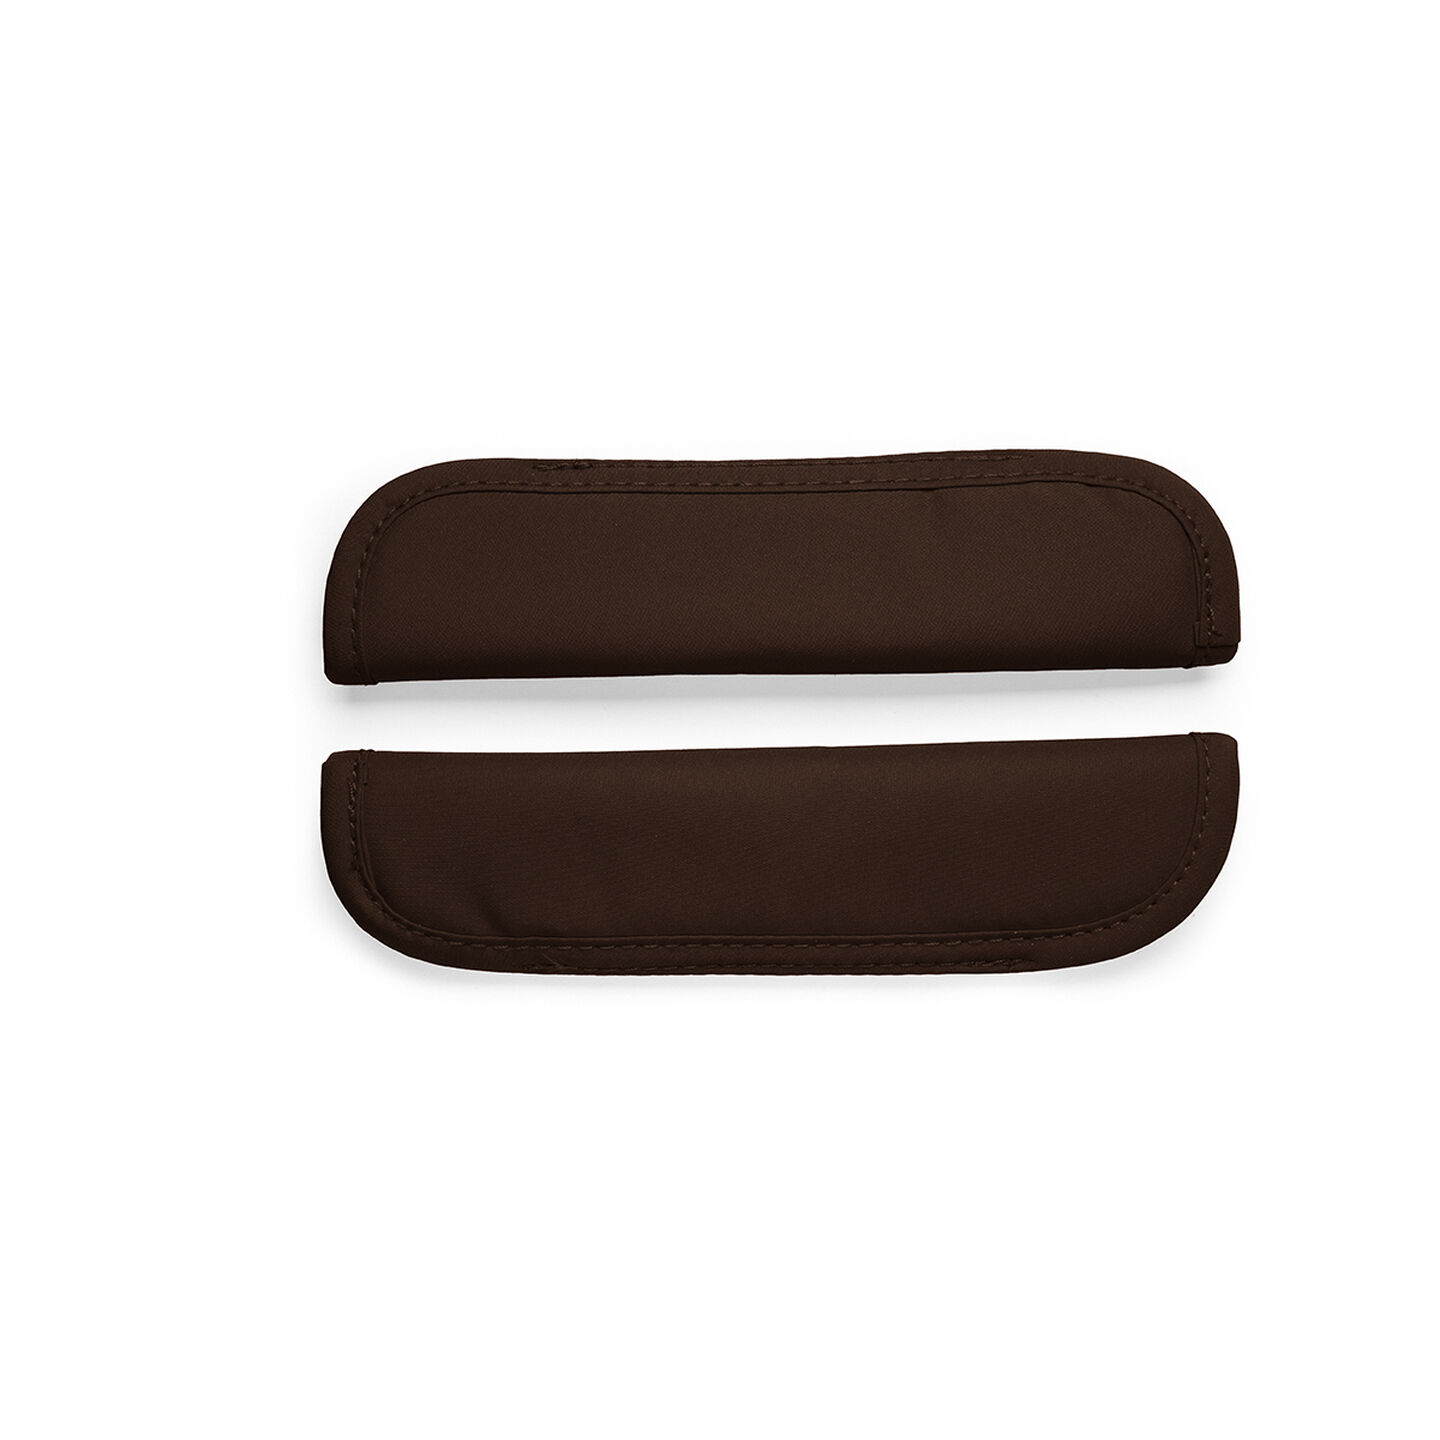 Stokke® Xplory® Selebeskytter Brown, Brown, mainview view 1